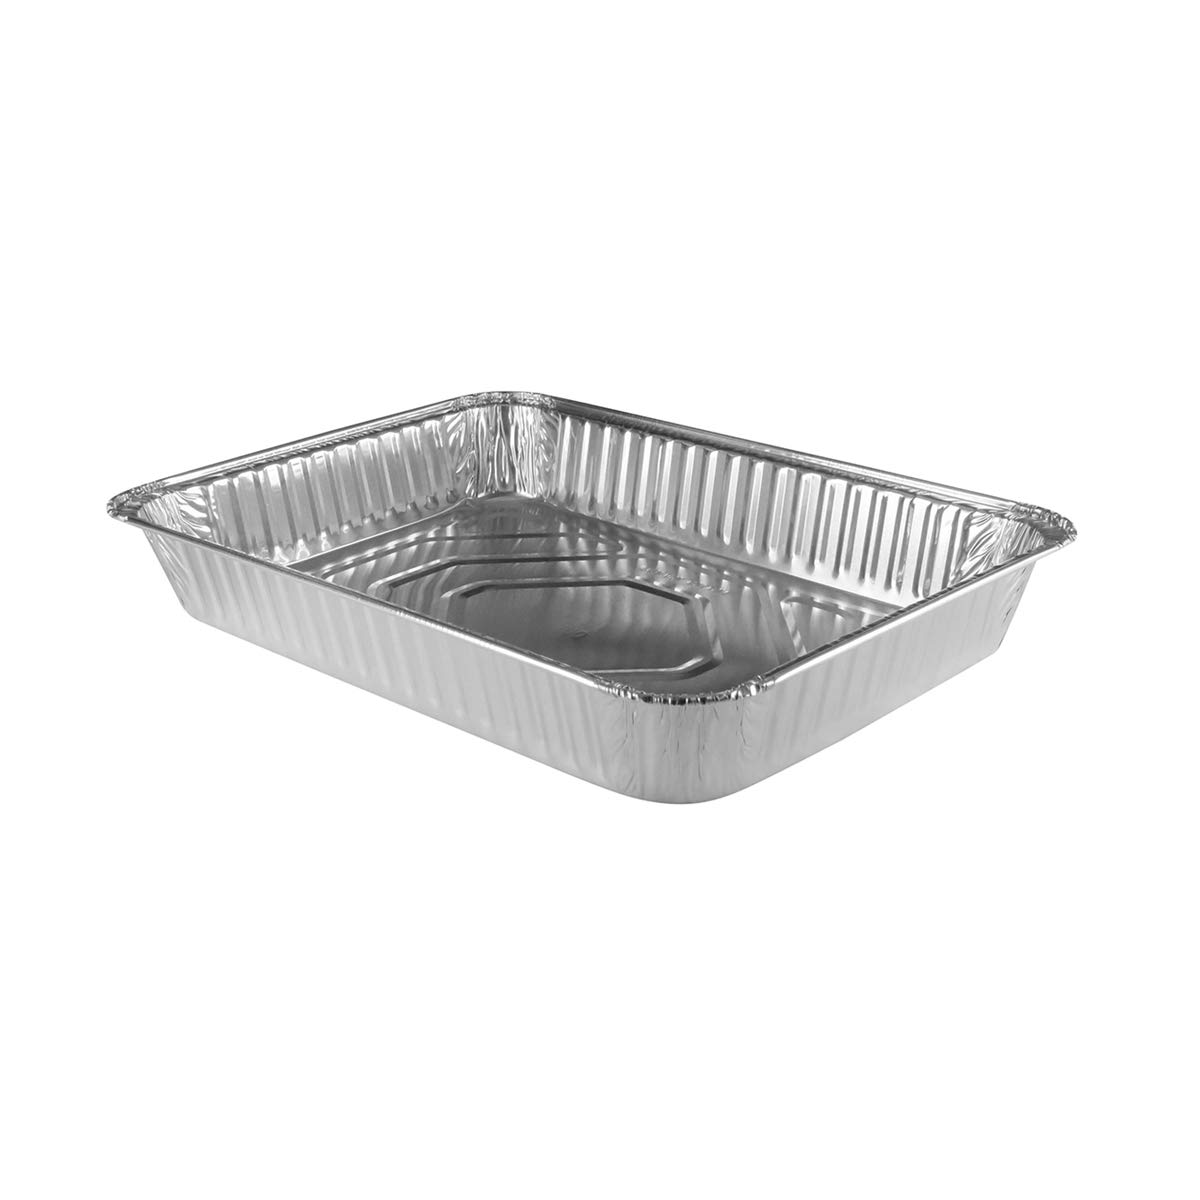 13 x 9 x 2'' Durable Disposable Aluminum all purpose pan. #4700NL (50)